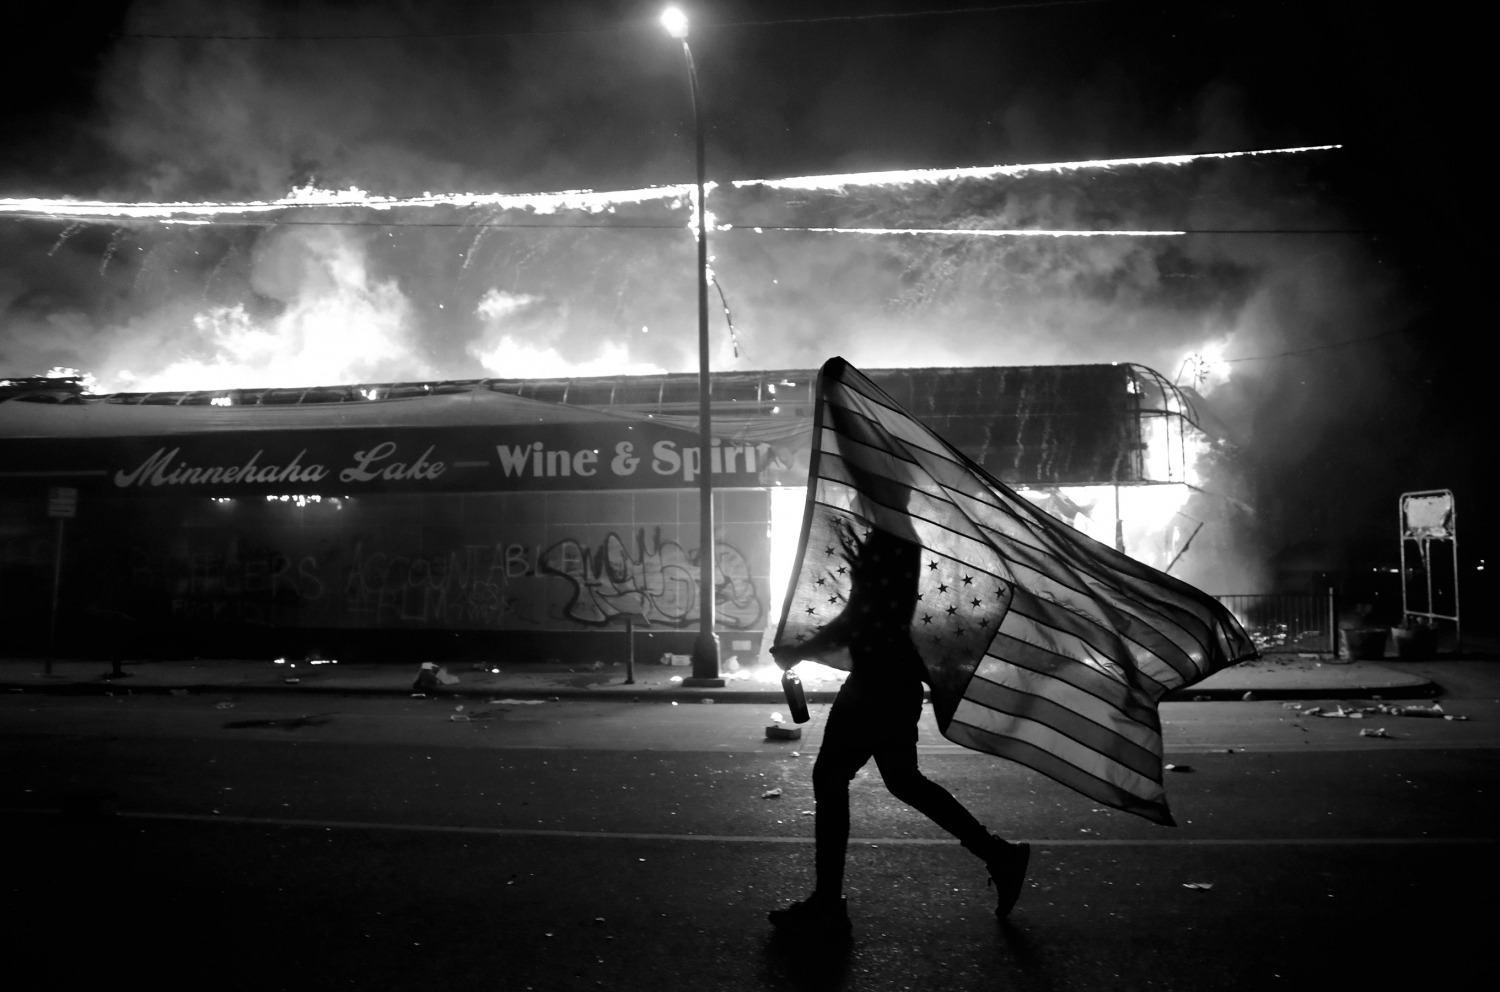 Protester carries the carries a U.S. flag upside, a sign of distress, next to a burning building, in Minneapolis. Protests over the death of George Floyd, a black man who died in police custody Monday, broke out in Minneapolis for a third straight nightPolice Death, Minneapolis, United States - 28 May 2020